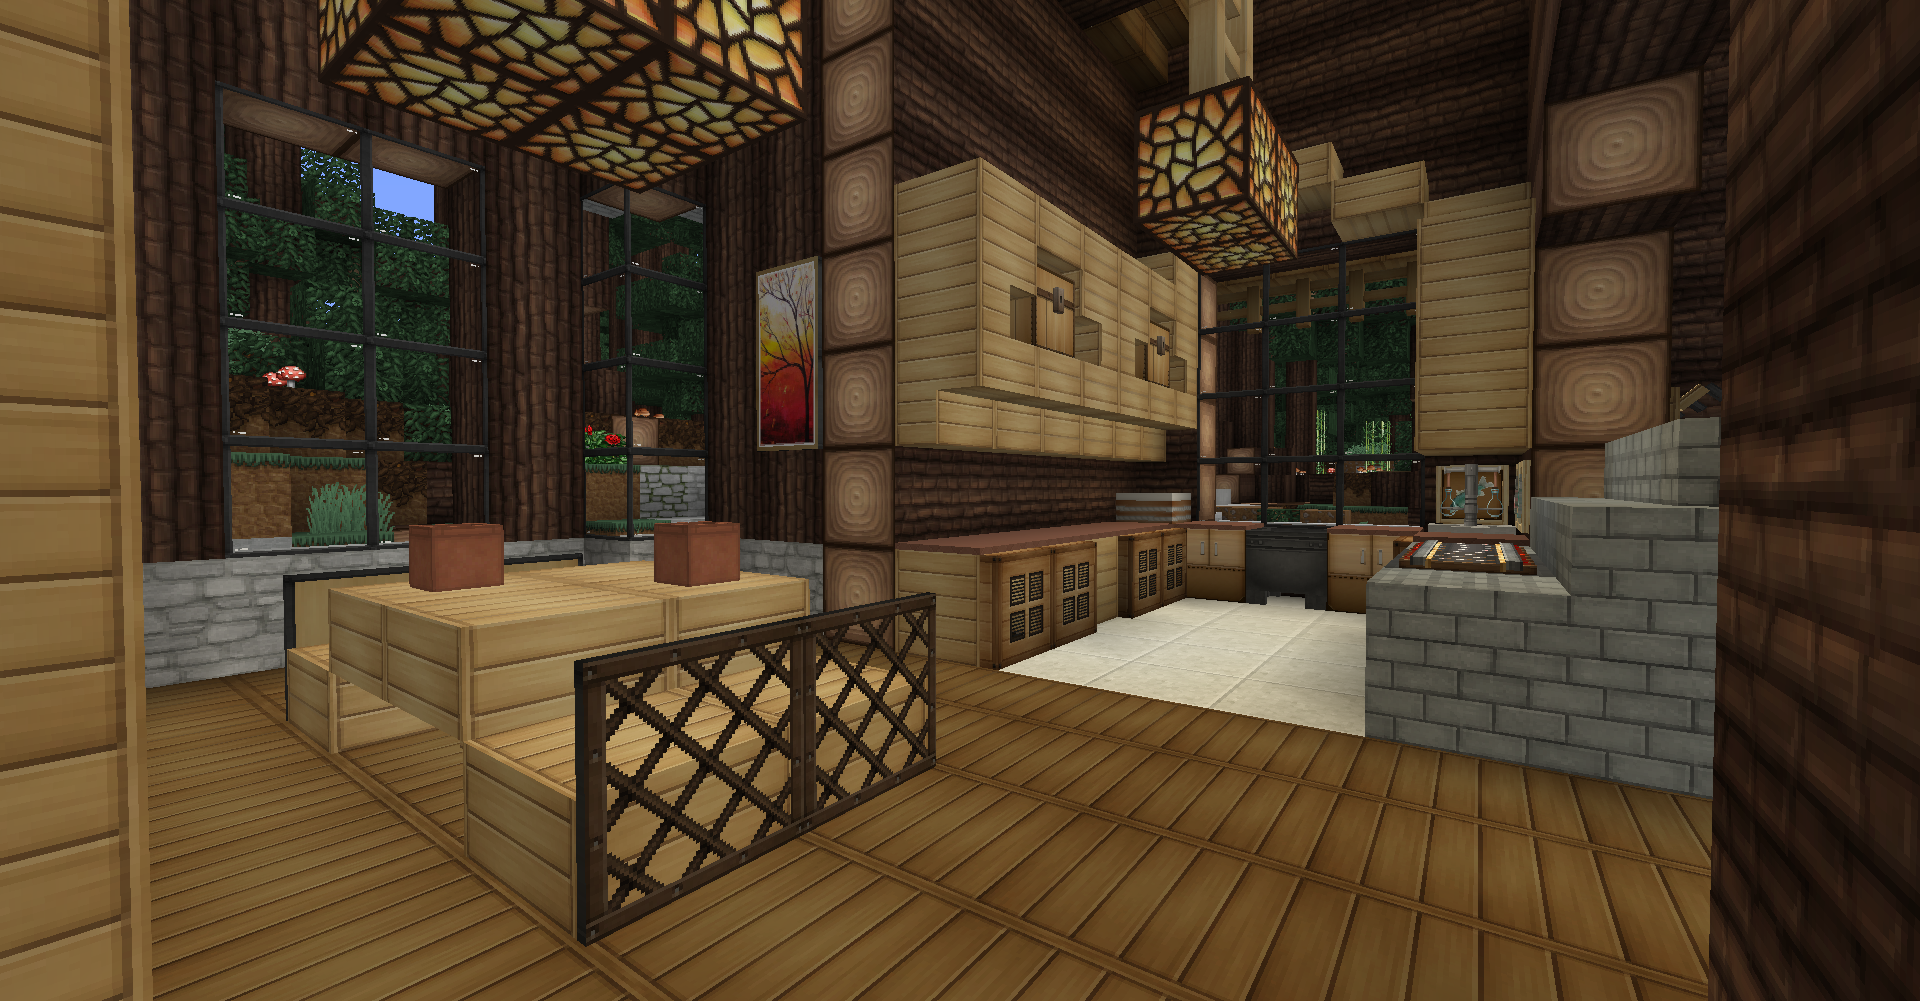 minecraft survival  log cabin  interior  dining room  kitchen. minecraft survival  log cabin  interior  dining room  kitchen